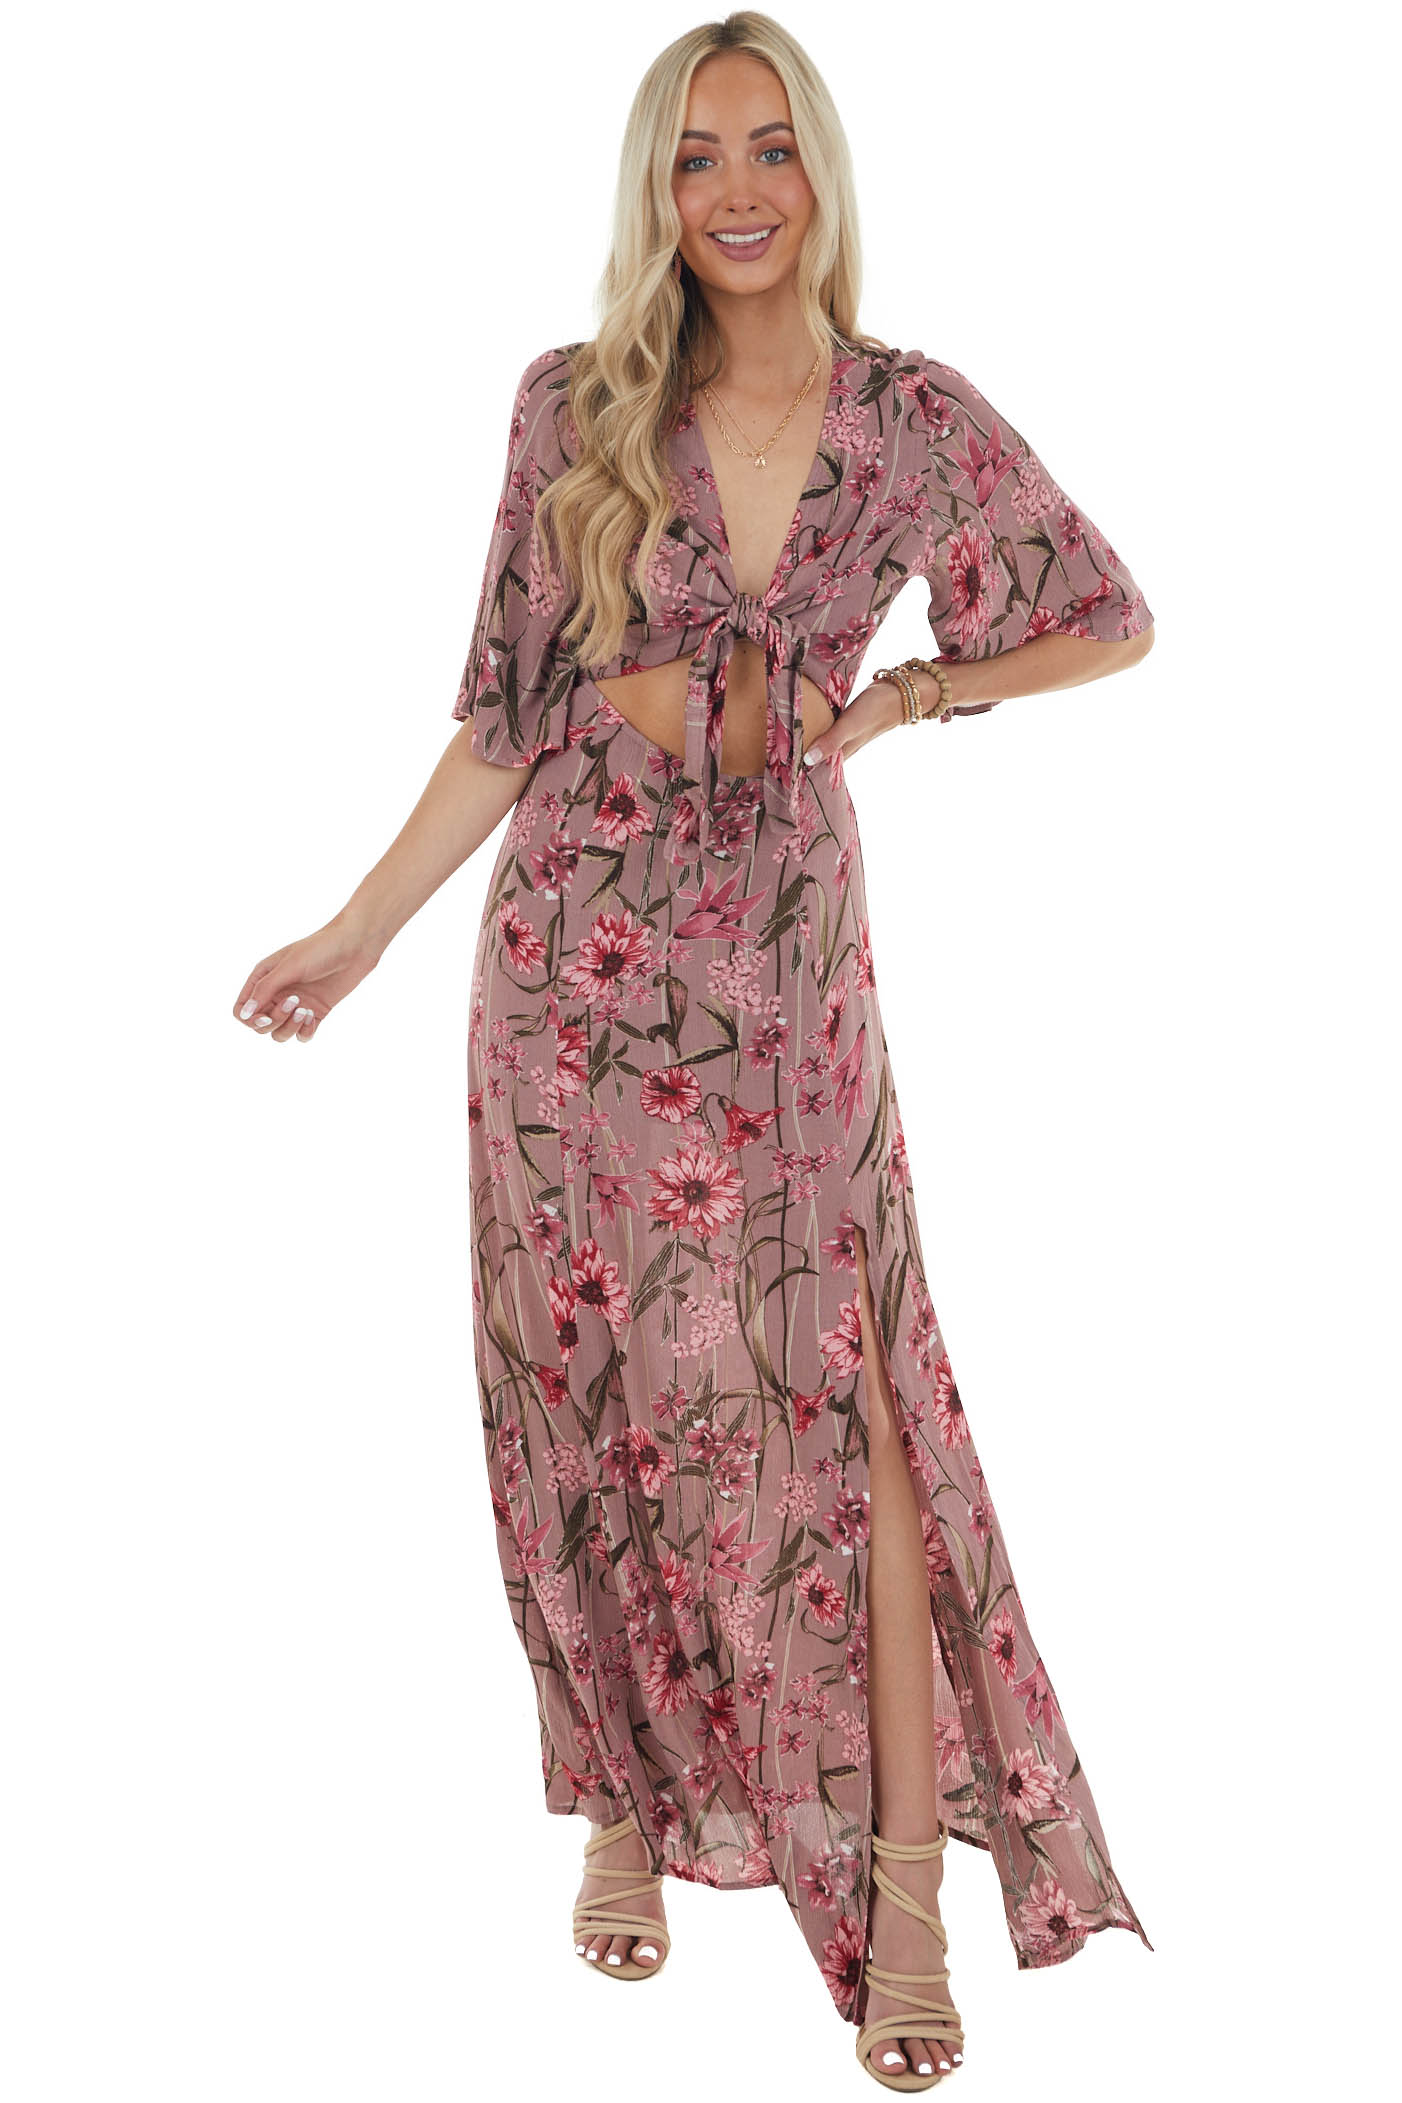 Dusty Rose Floral Maxi Dress with Front Cutout